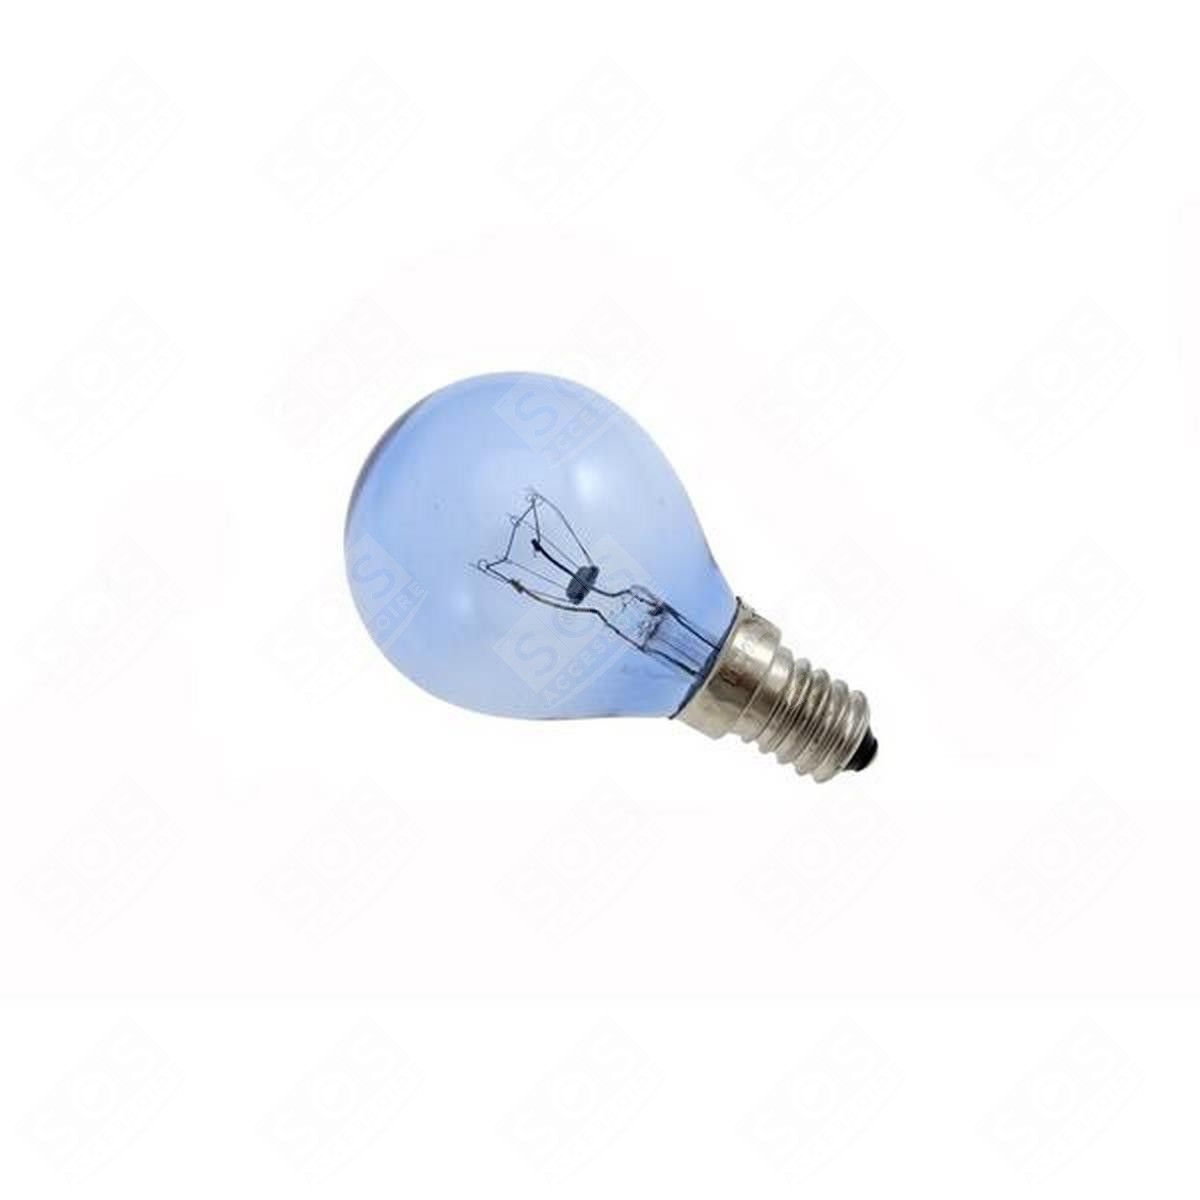 Blue Bulb Small Base For Fridges Or Freezers Lg 6912jb2008a